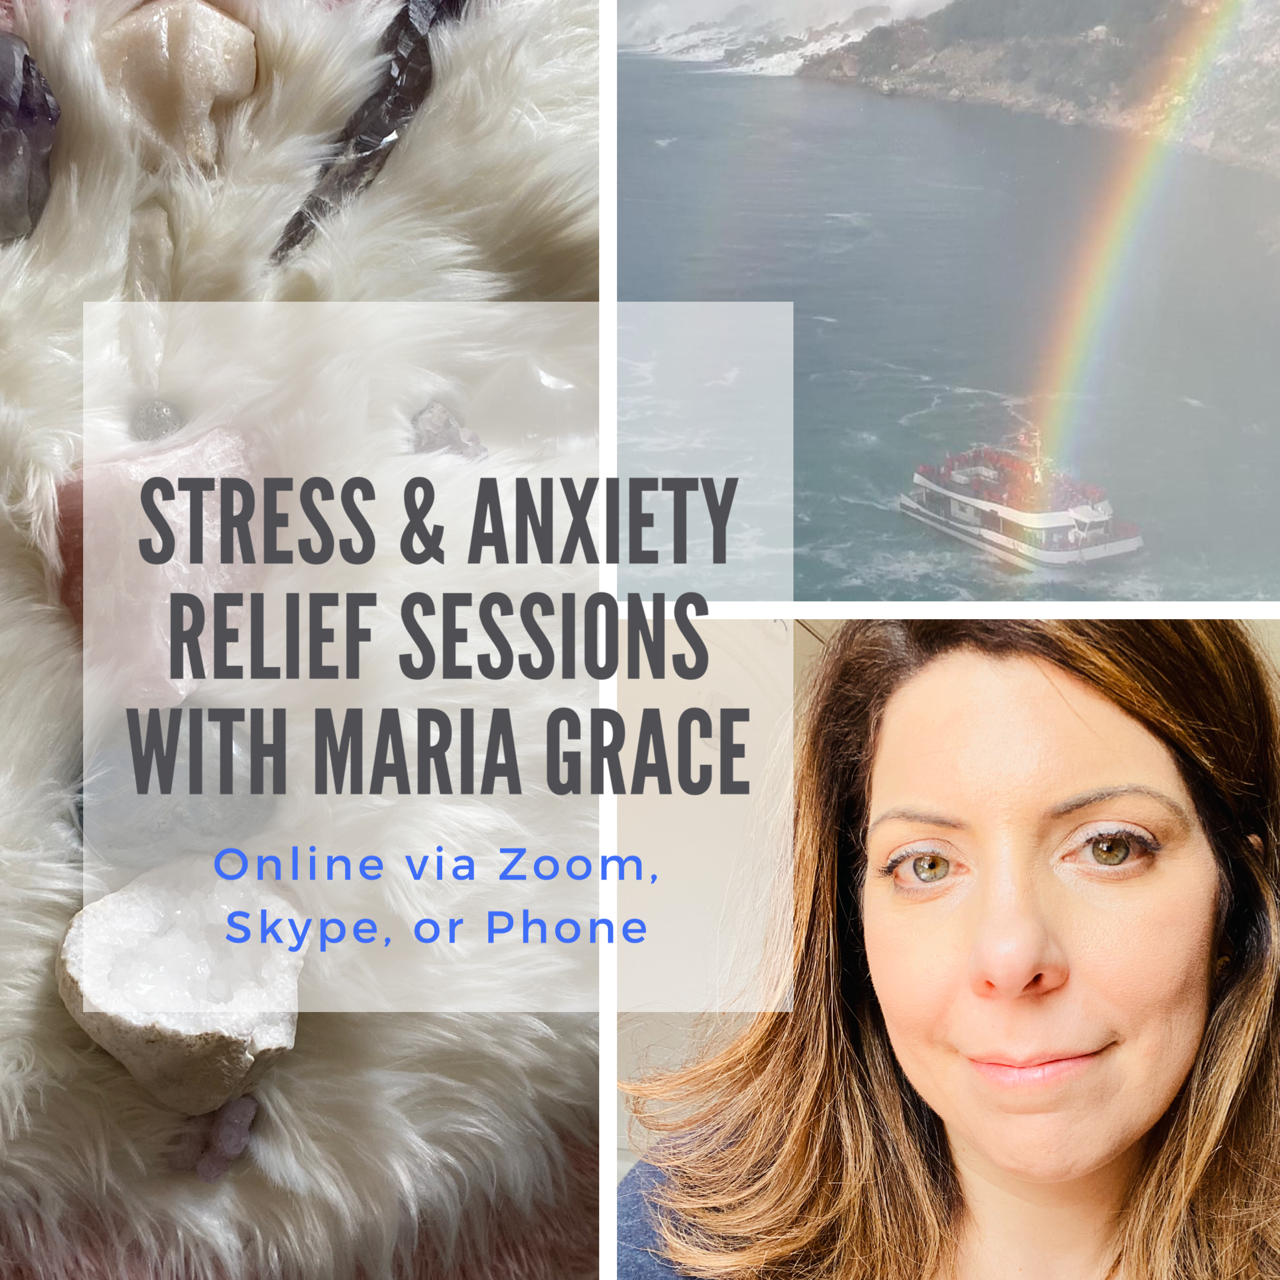 Stress & Anxiety Relief Sessions